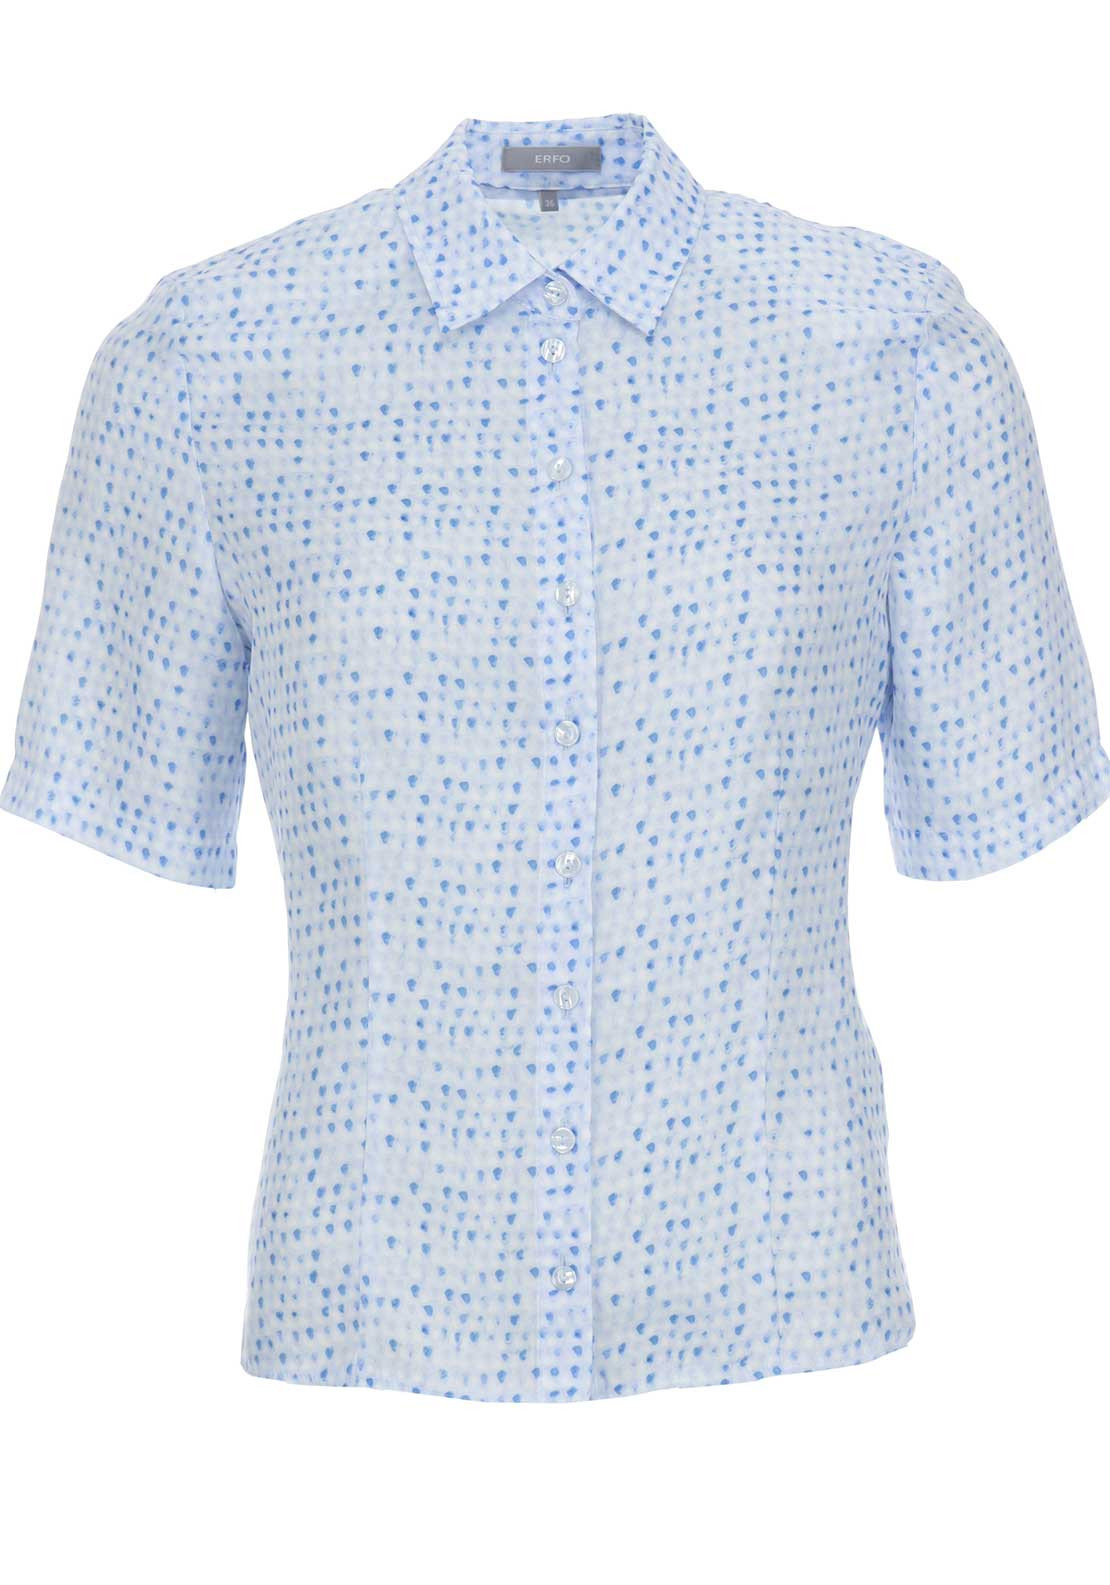 ERFO Printed Short Sleeve Blouse, Blue